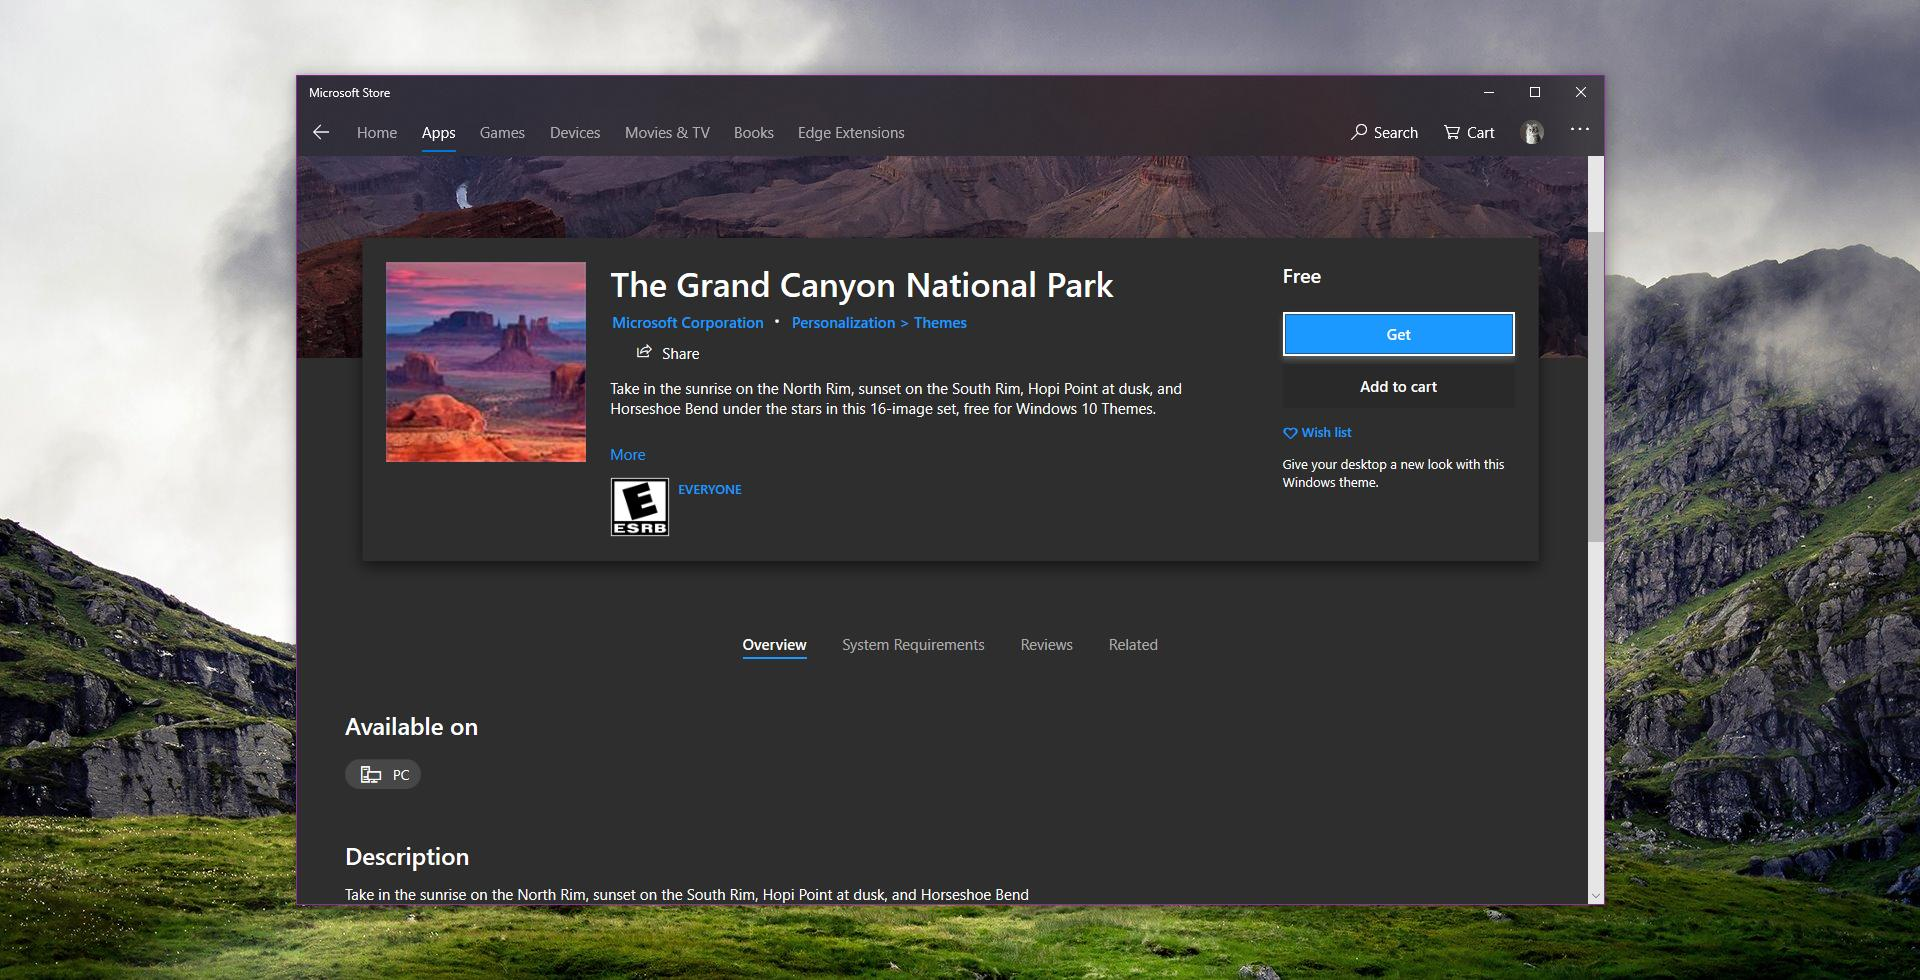 Microsoft Releases New Windows 10 Theme with HD Grand Canyon Wallpapers